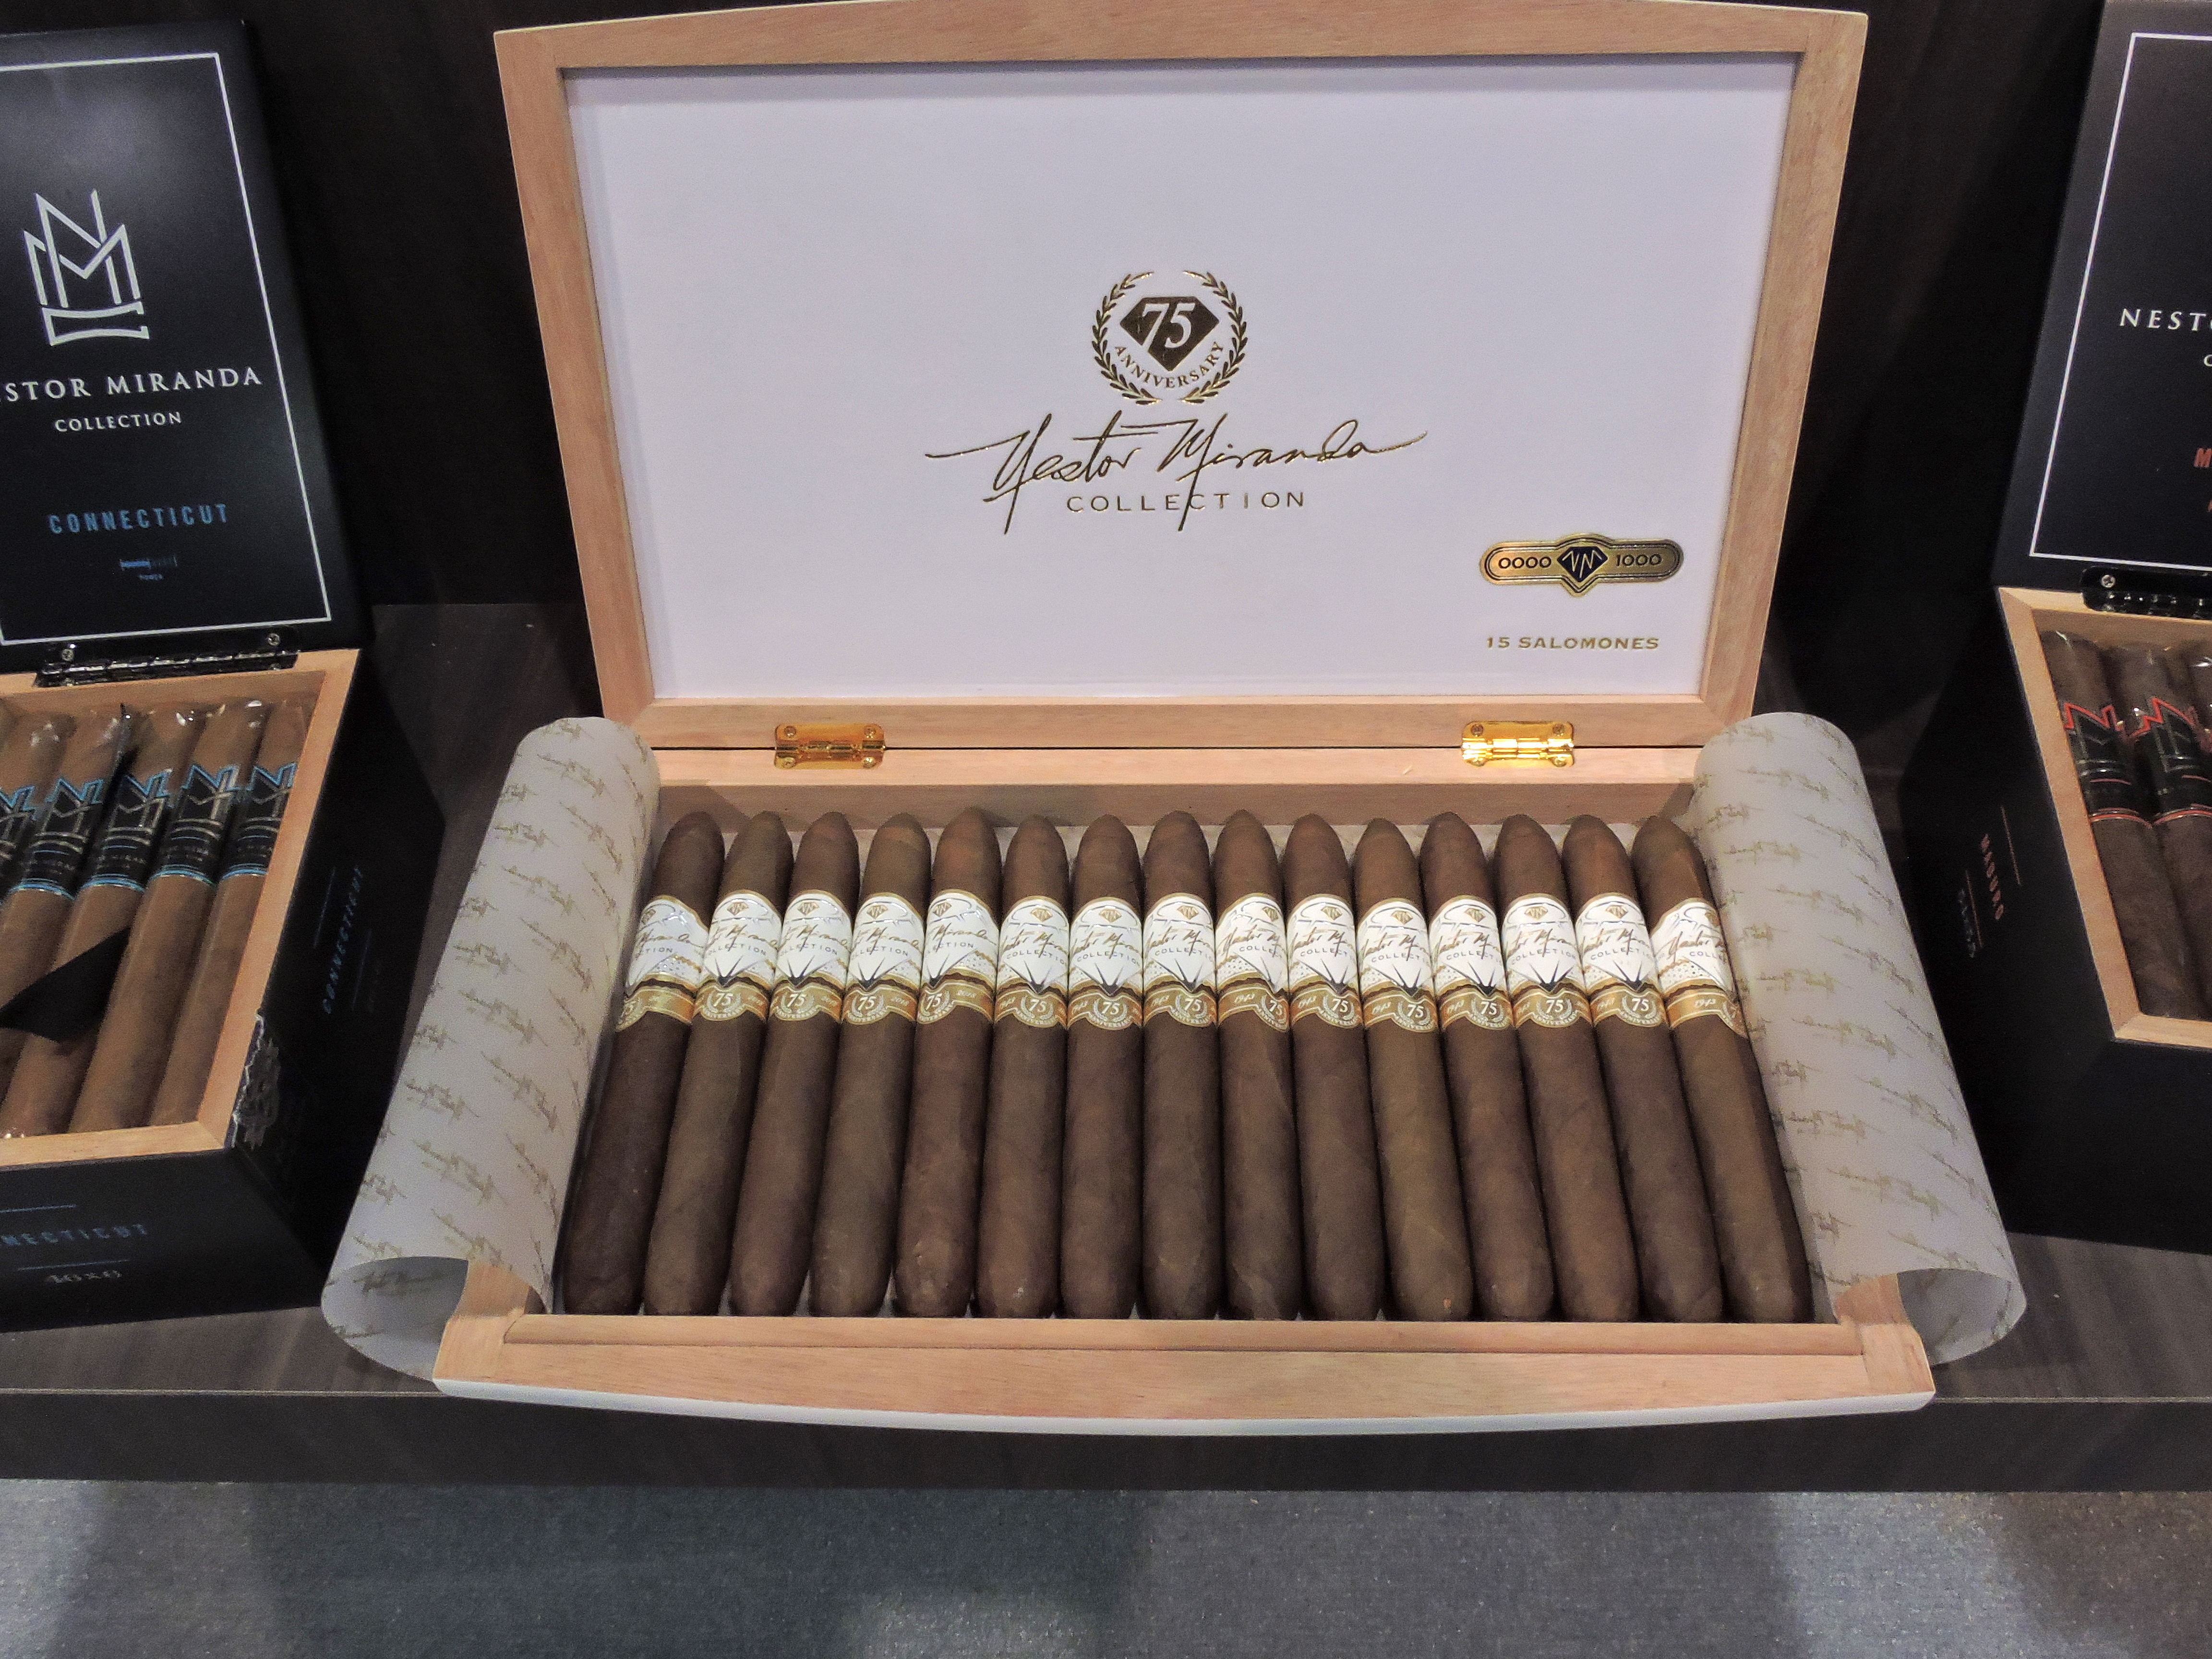 Cigar News: Nestor Miranda Collection 75th Anniversary Cigar Heads for Release